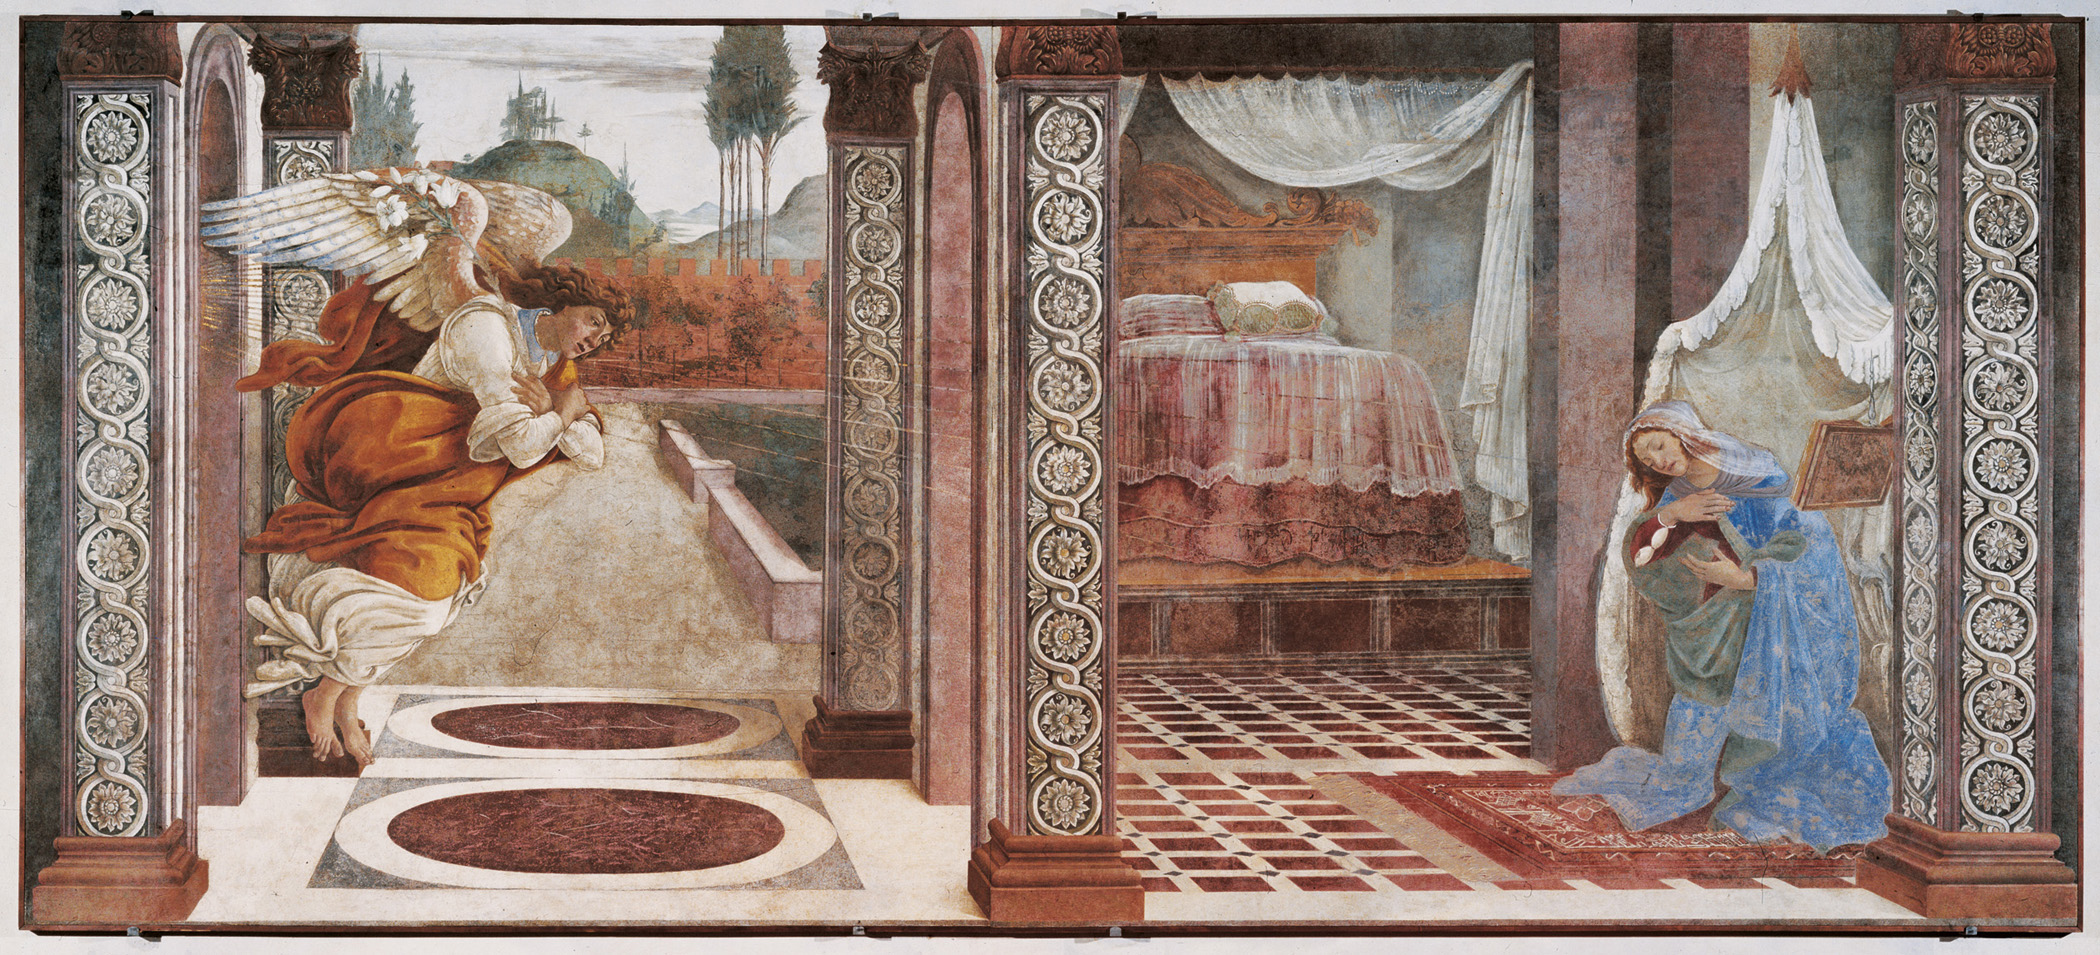 Cestello Annunciation by Botticelli – Facts & History of ...